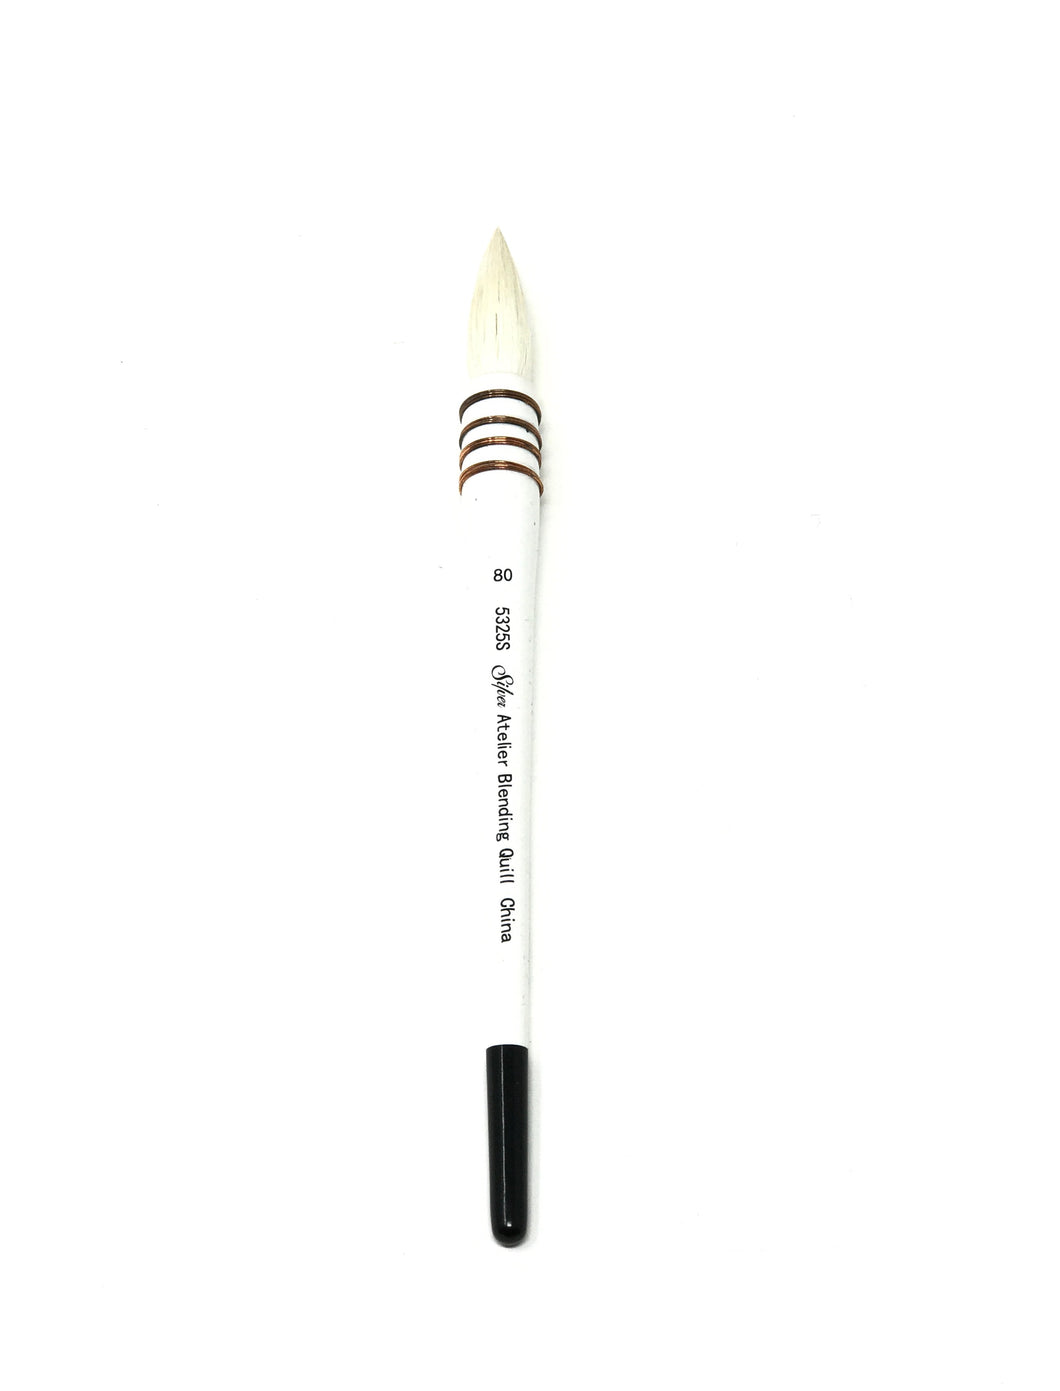 Blending Quill Size 80 - Oil, Acrylic, and Watercolor Brush Series 5325S